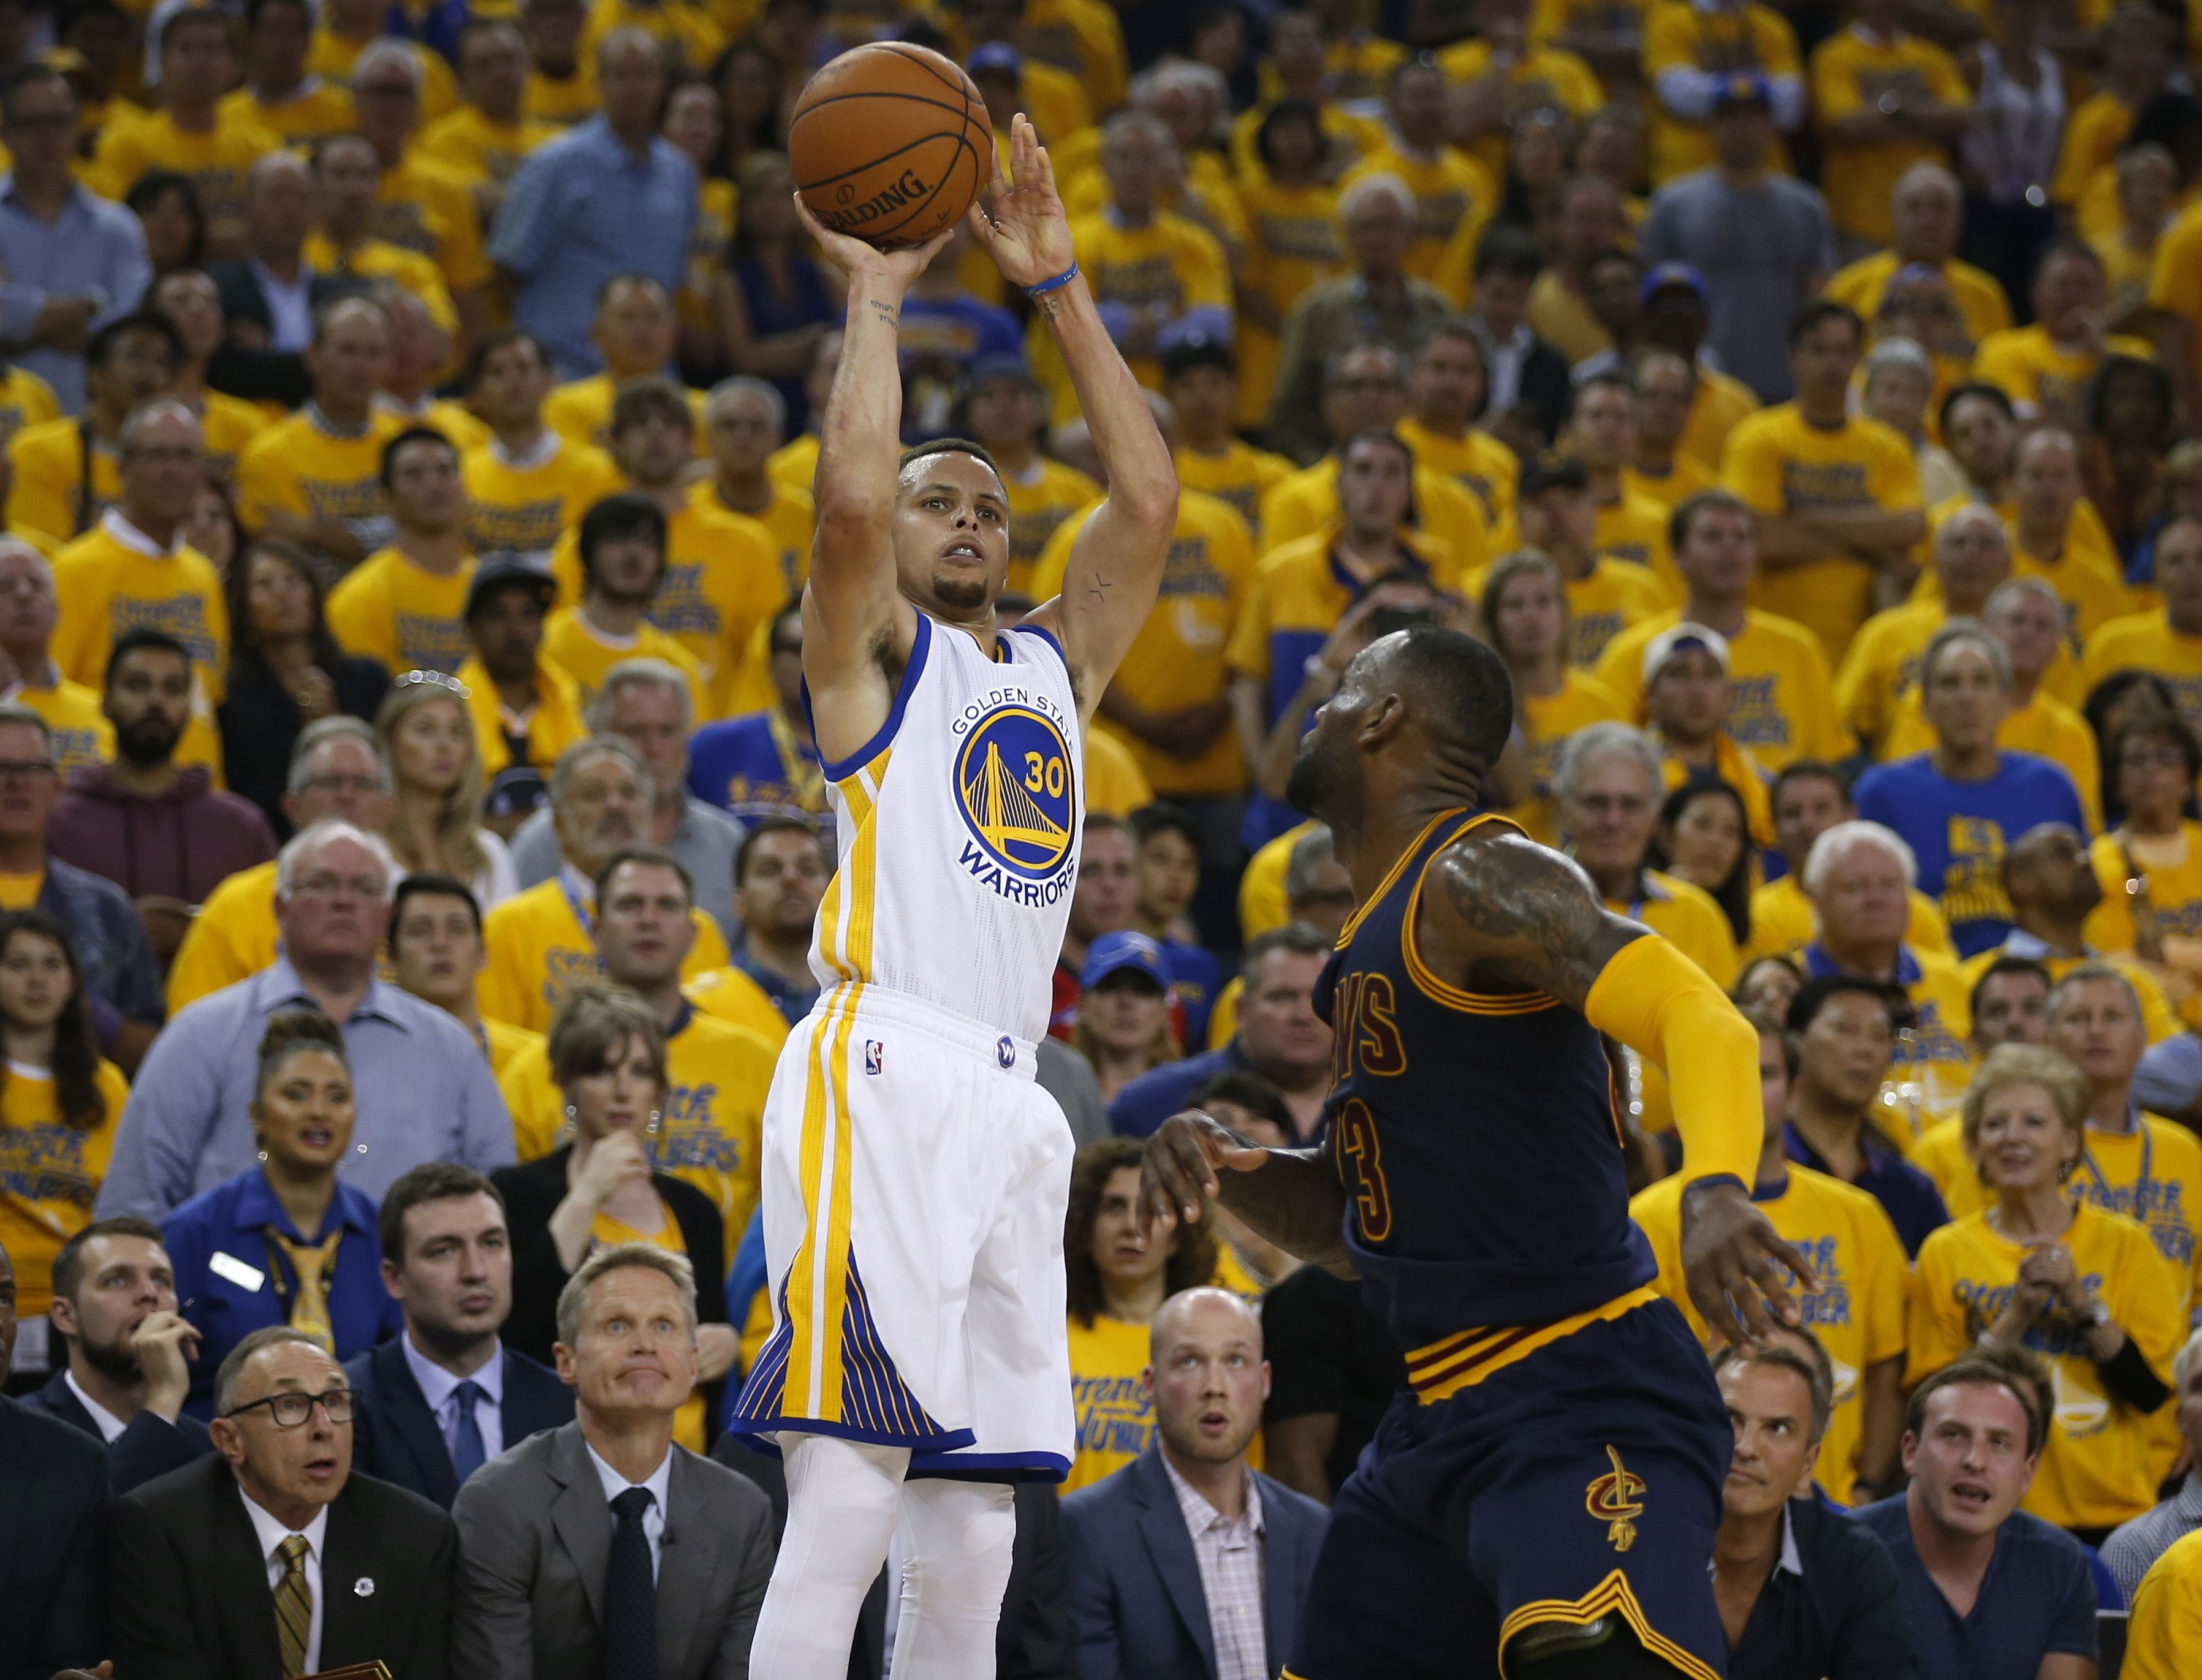 Stephen Curry shooting a 3 pointer over Lebron James fb3c4ed411a7